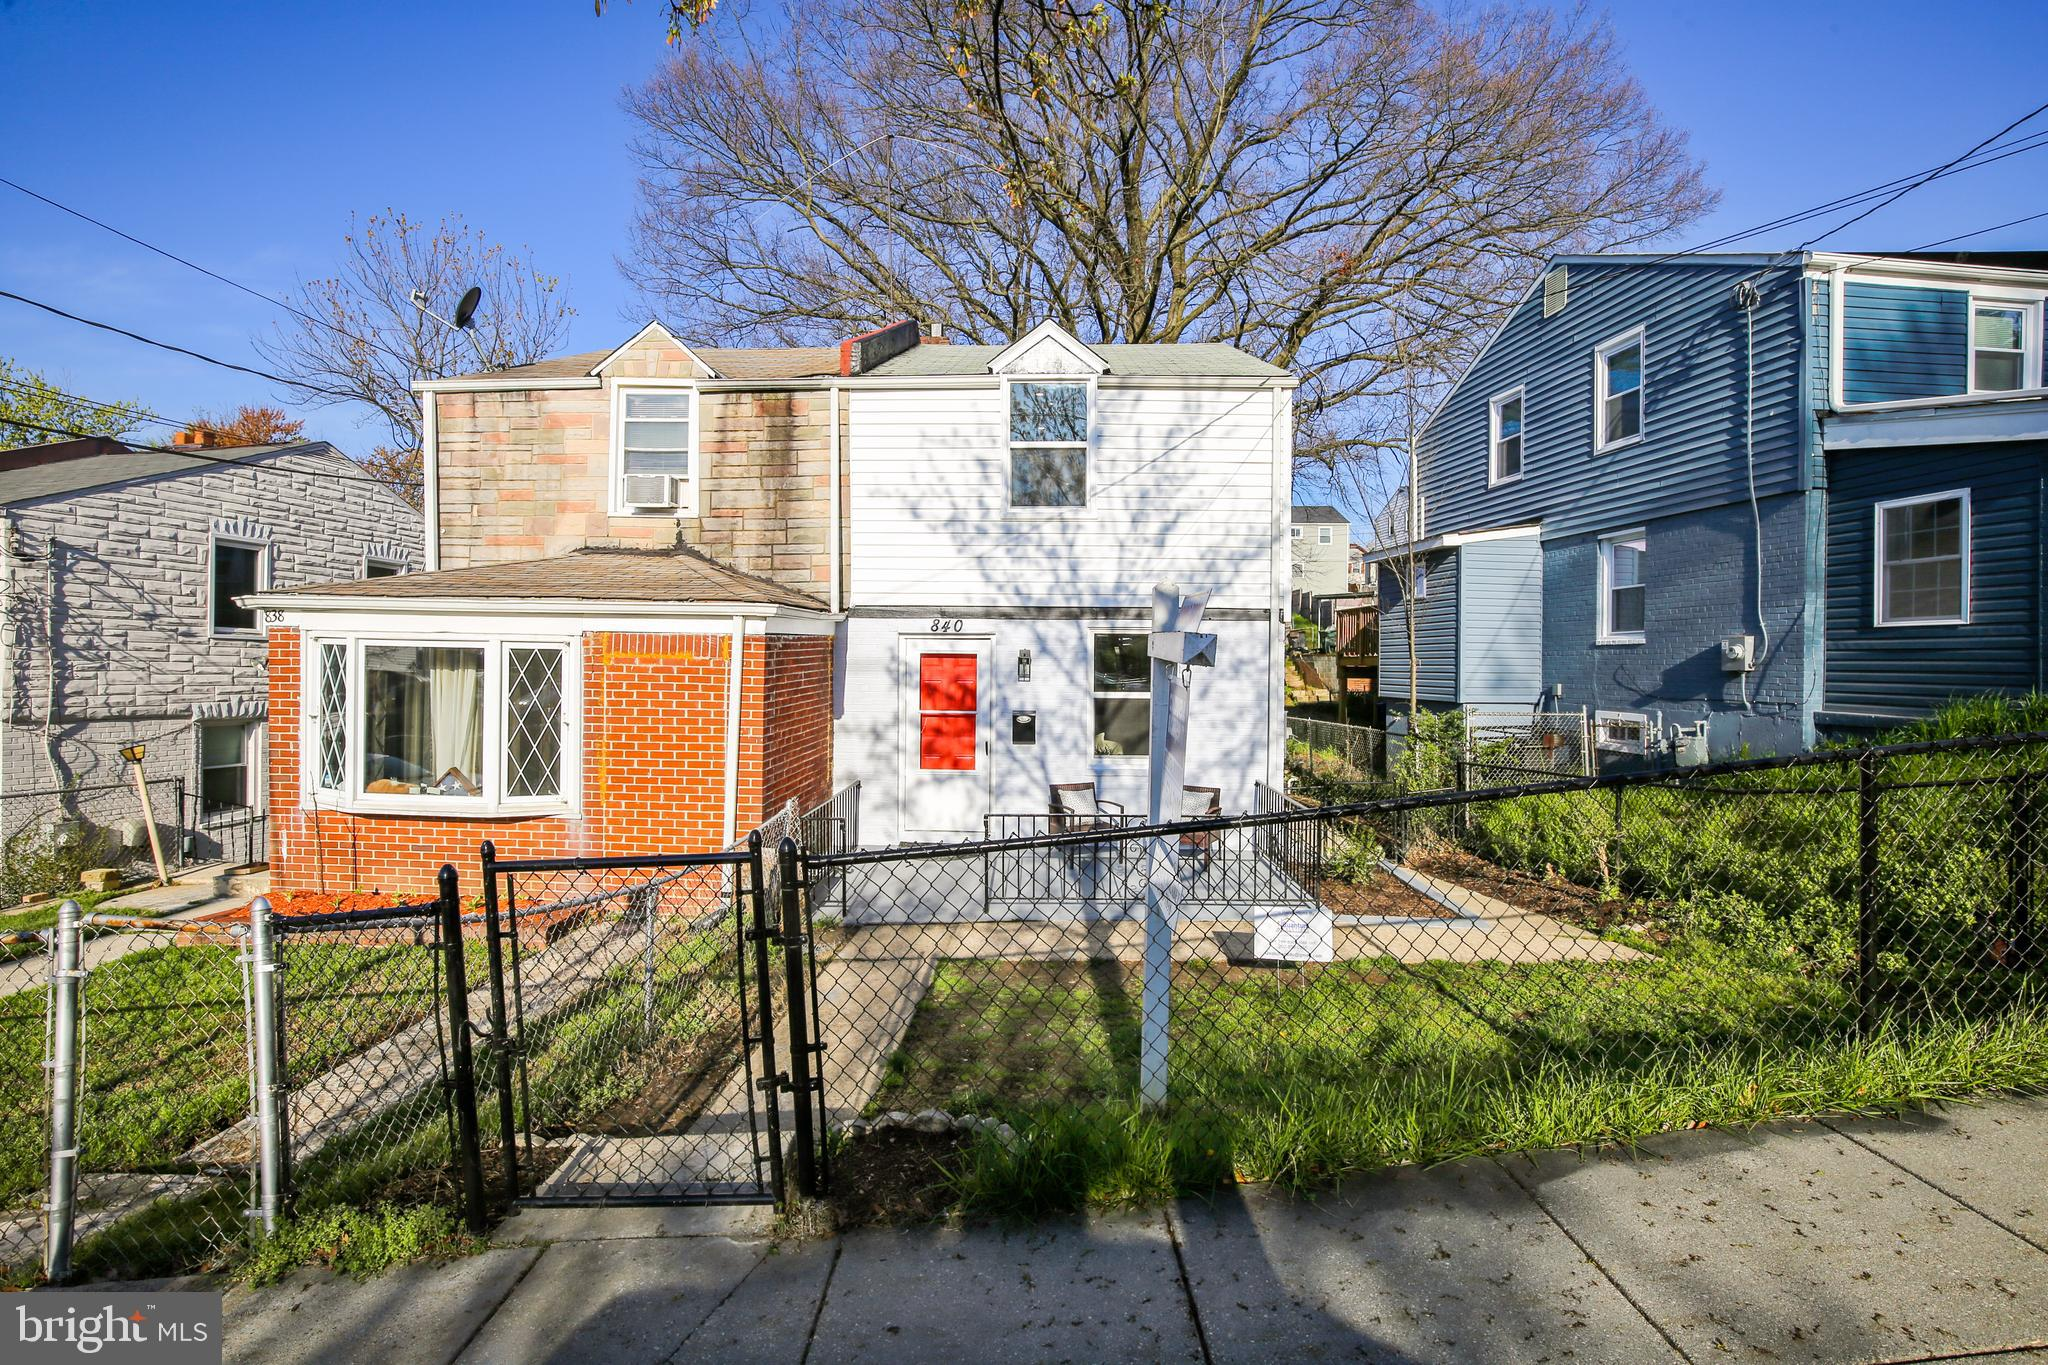 Charming renovation in the heart of Deanwood with impeccable curb appeal. This 2 bedroom, 2.5 bathro